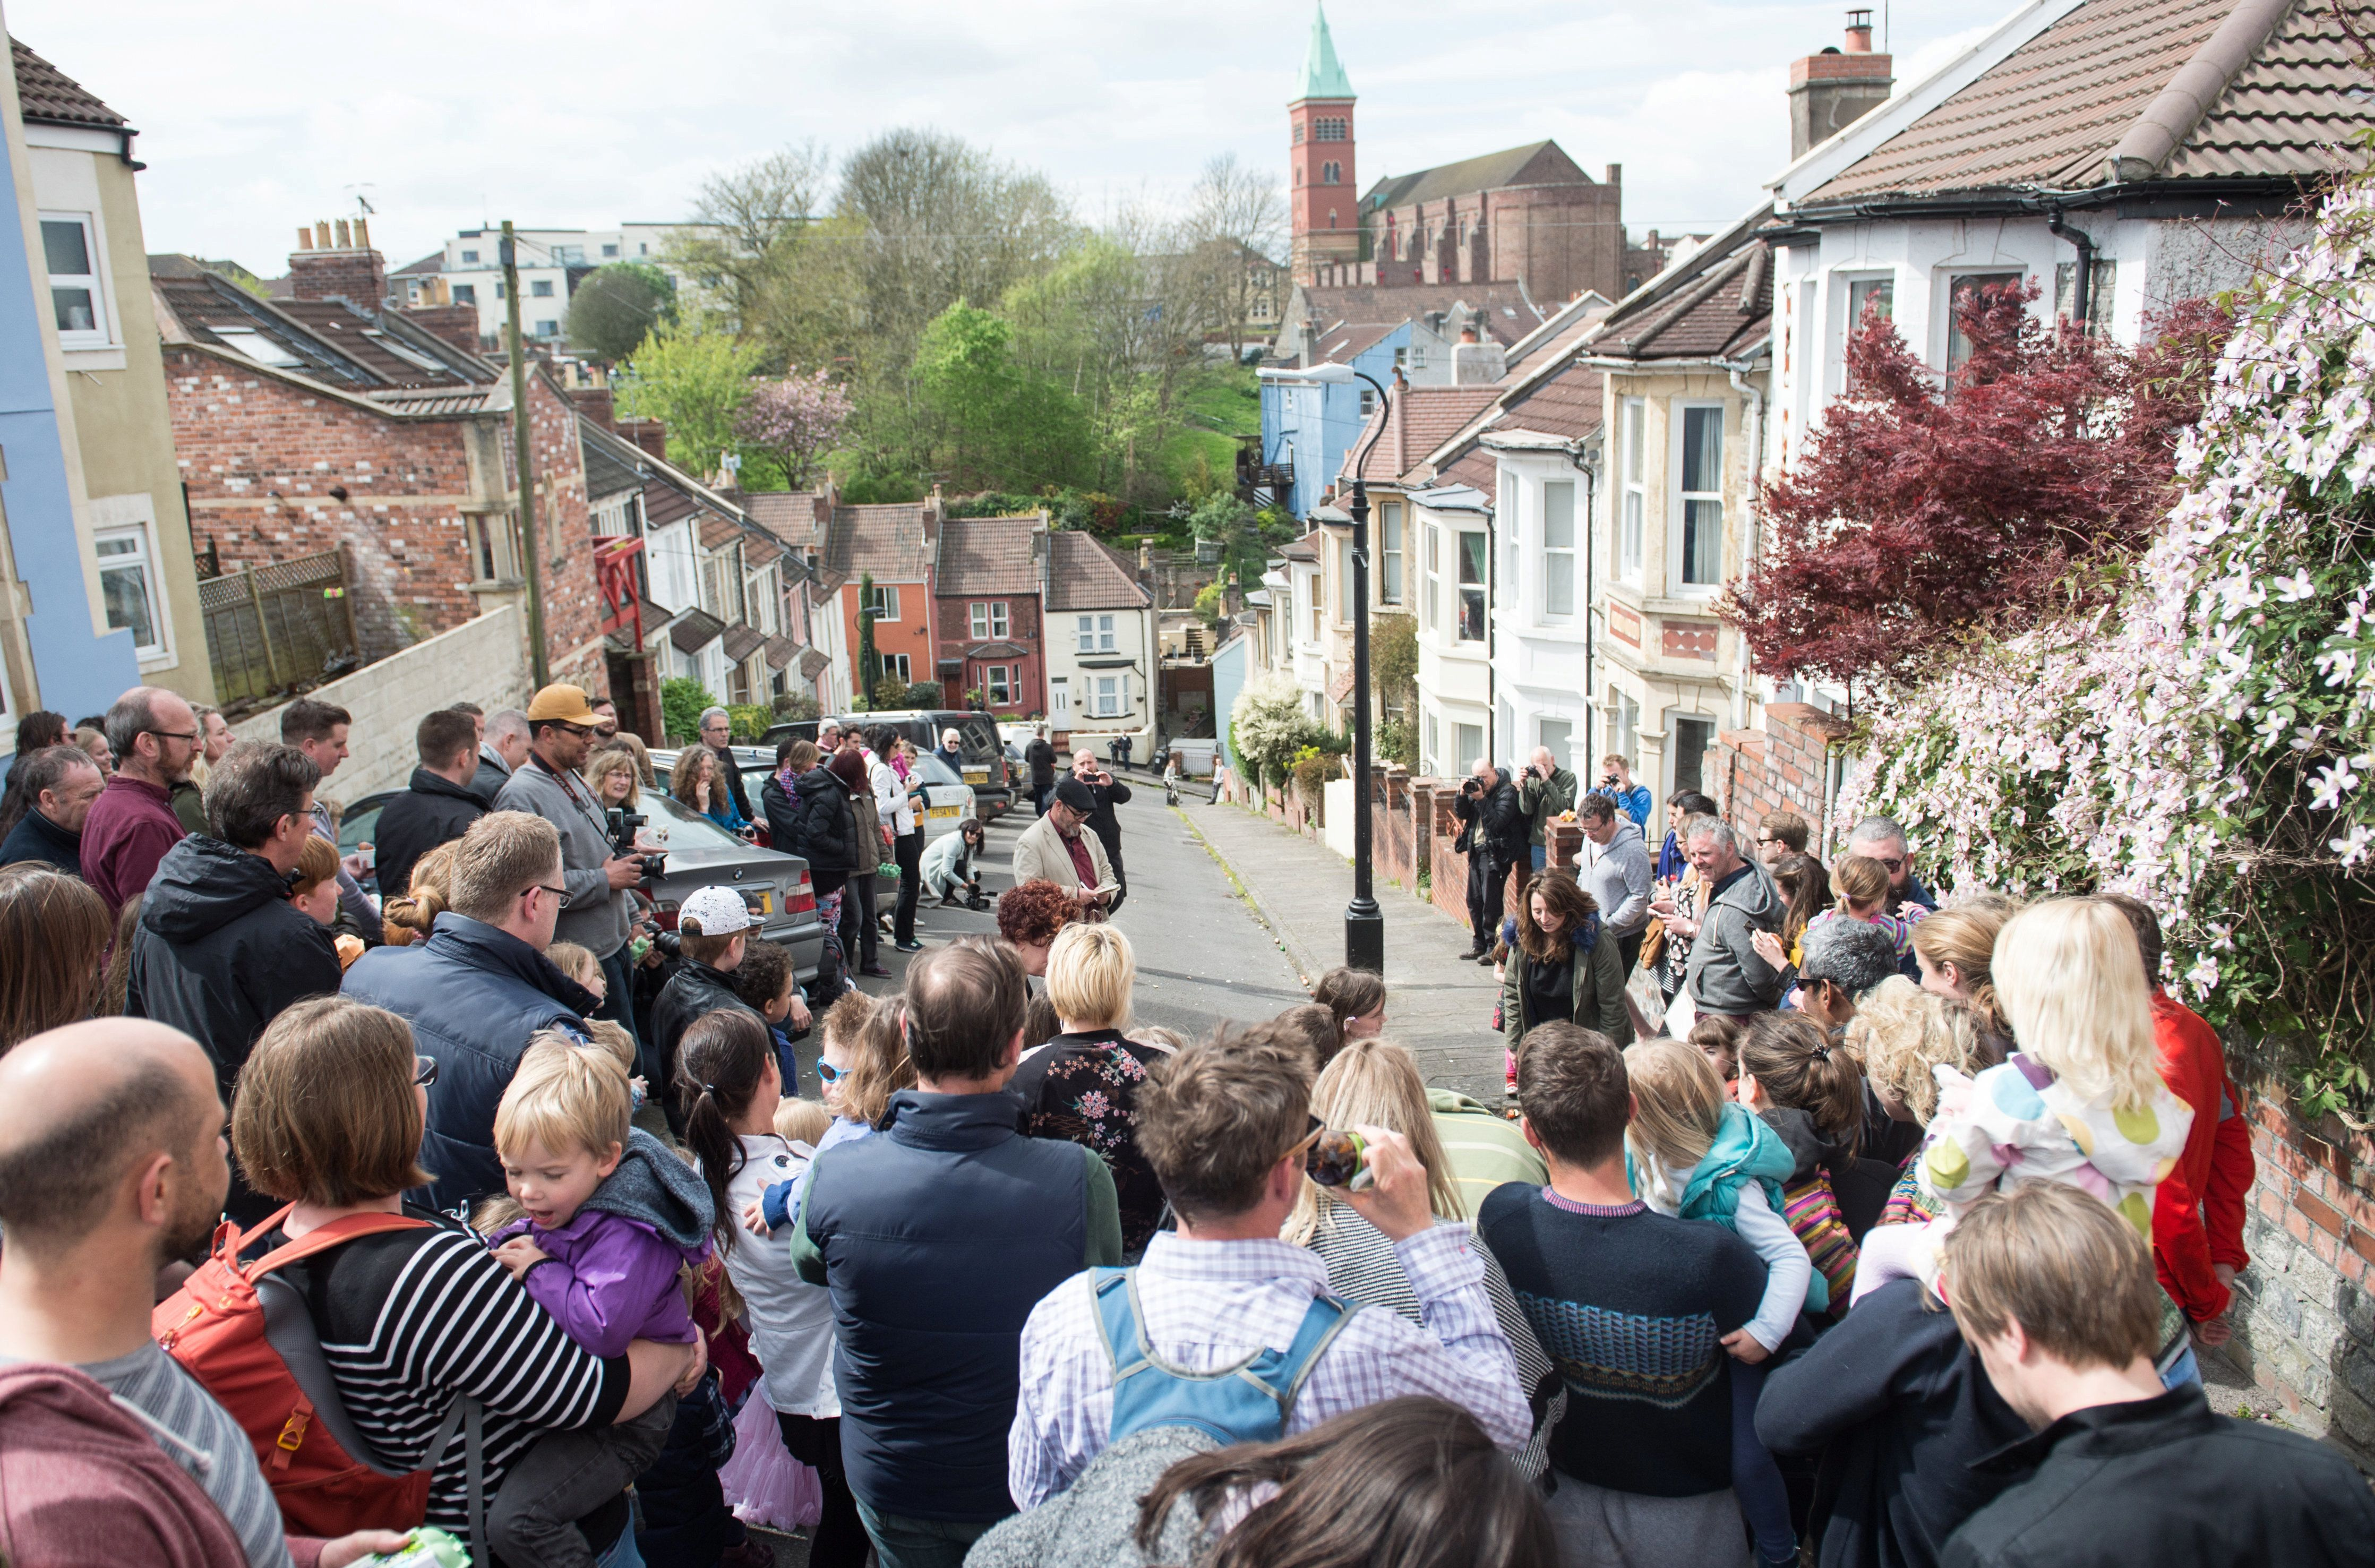 Vale Street, in Bristol, which is officially England's steepest street - according to Ordnance Survey. Pictured crowds have gathered for the annual egg rolling competition. (SWNS)